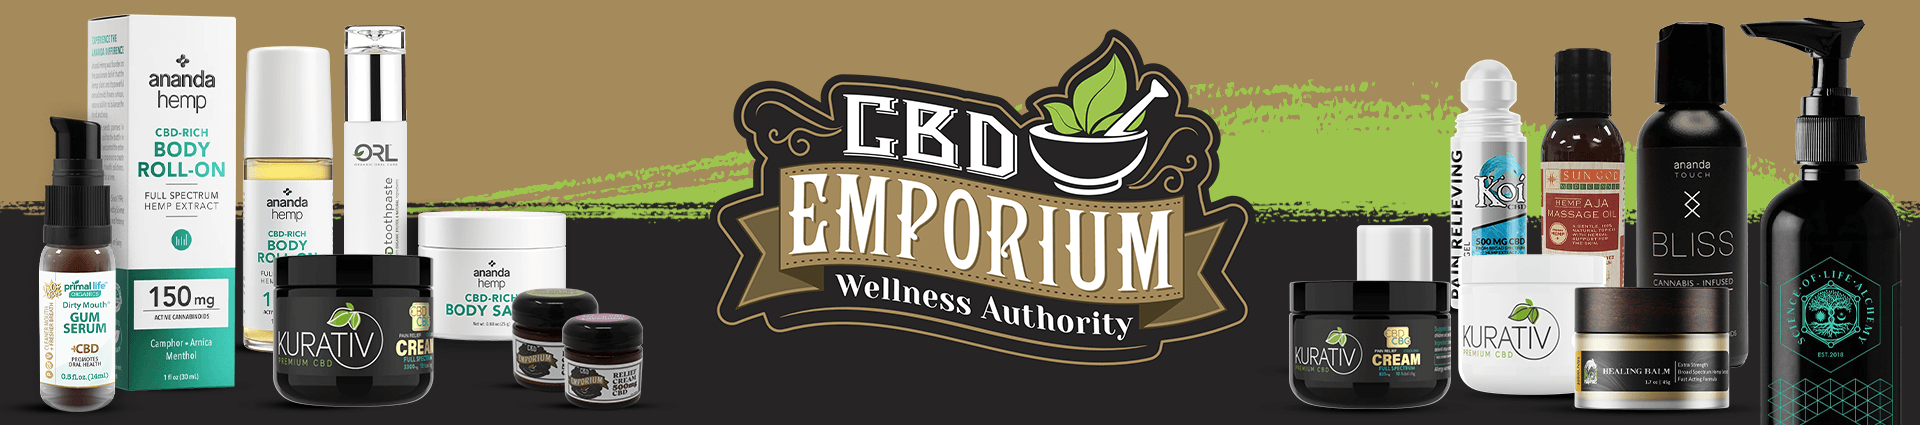 CBD Bath and Body products at CBD Emporium